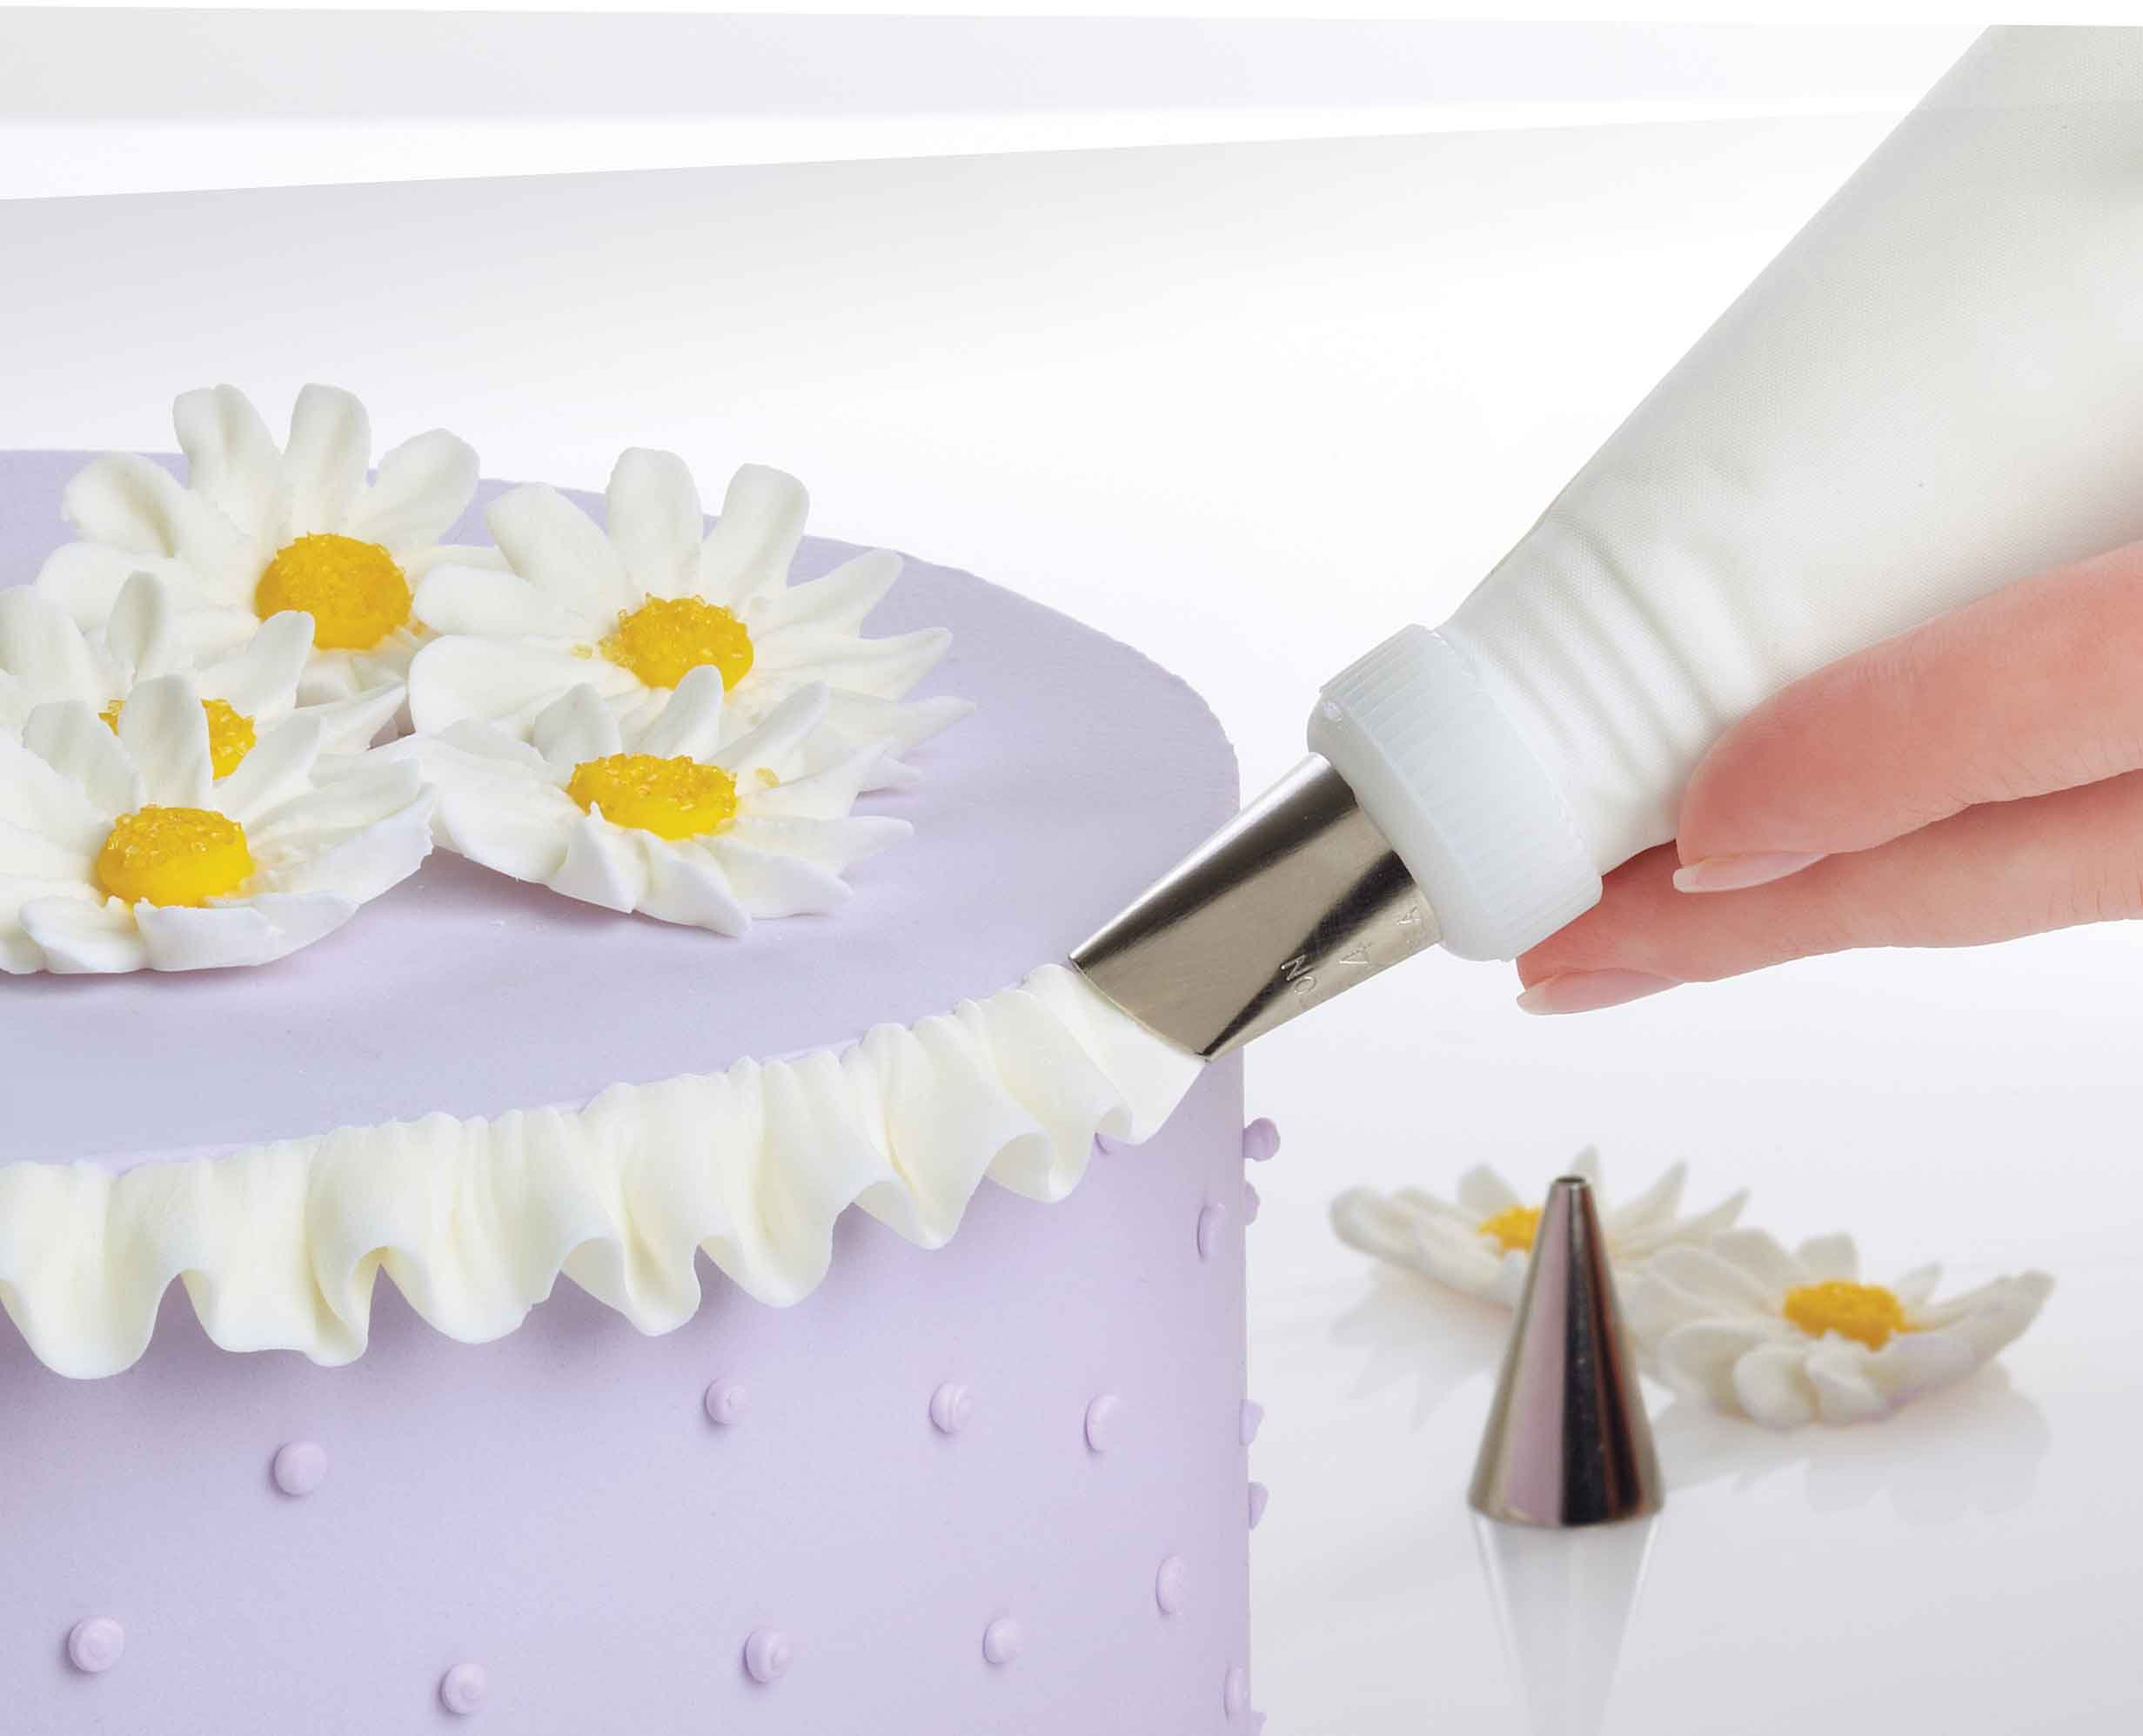 Wilton 2109-0309 Ultimate Professional Cake Decorating Set ...